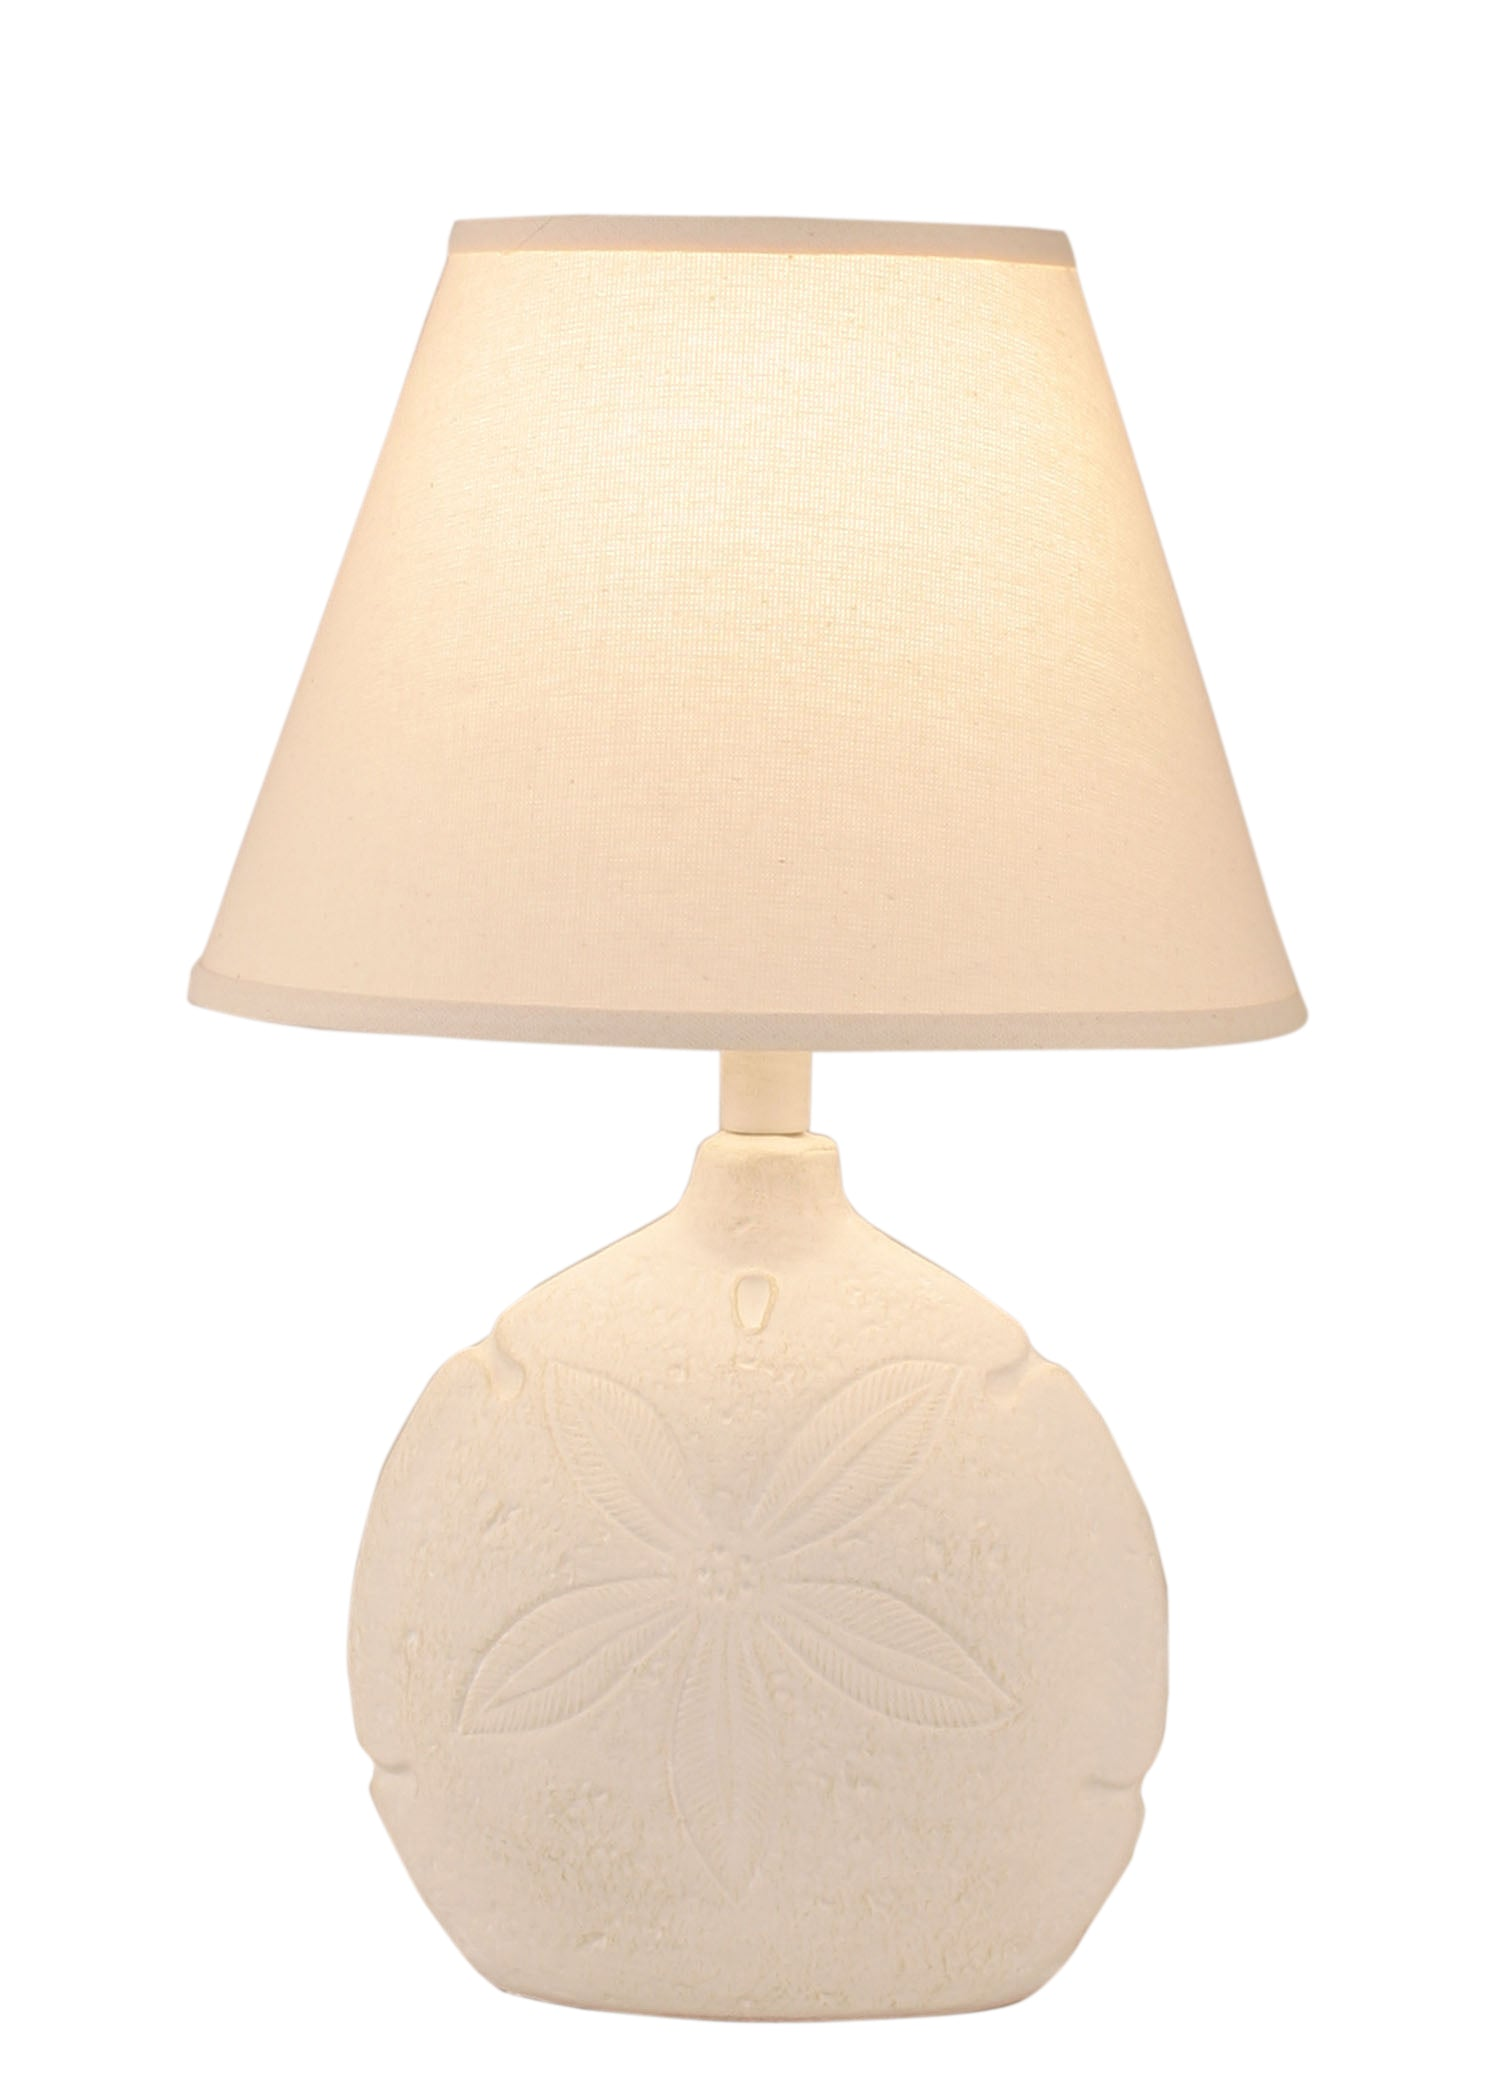 Nude Two Tone Sand Dollar Accent Lamp - Coast Lamp Shop